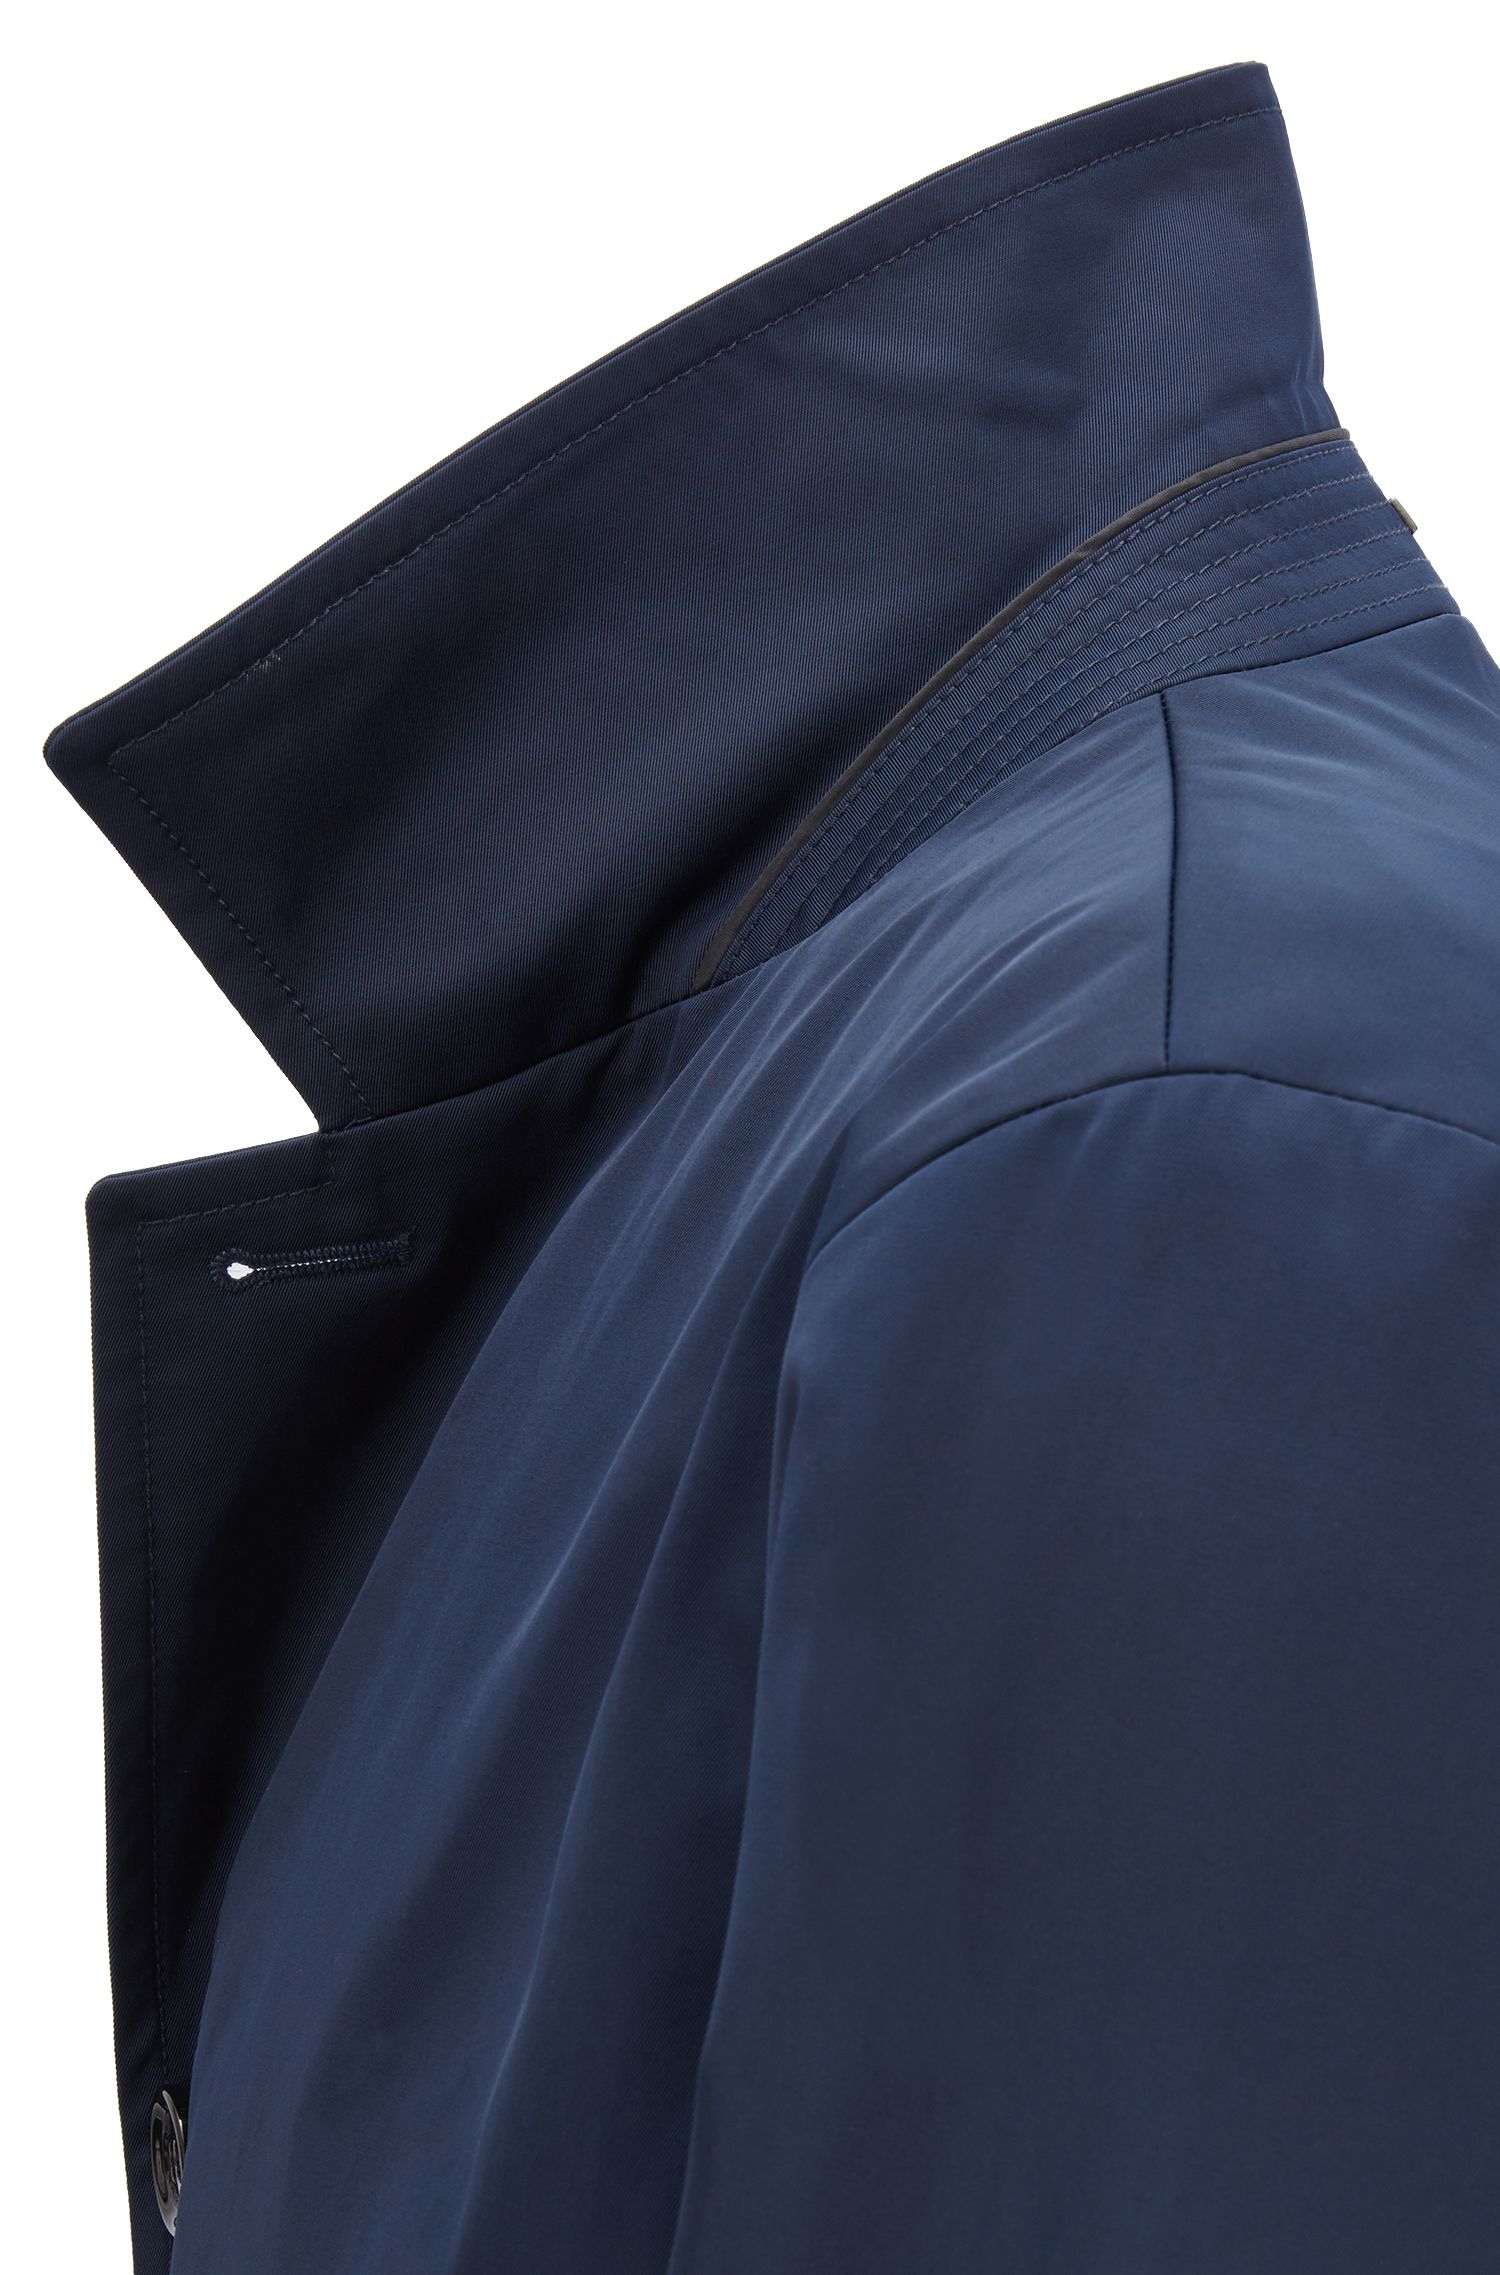 Cappotto idrorepellente in twill tecnico